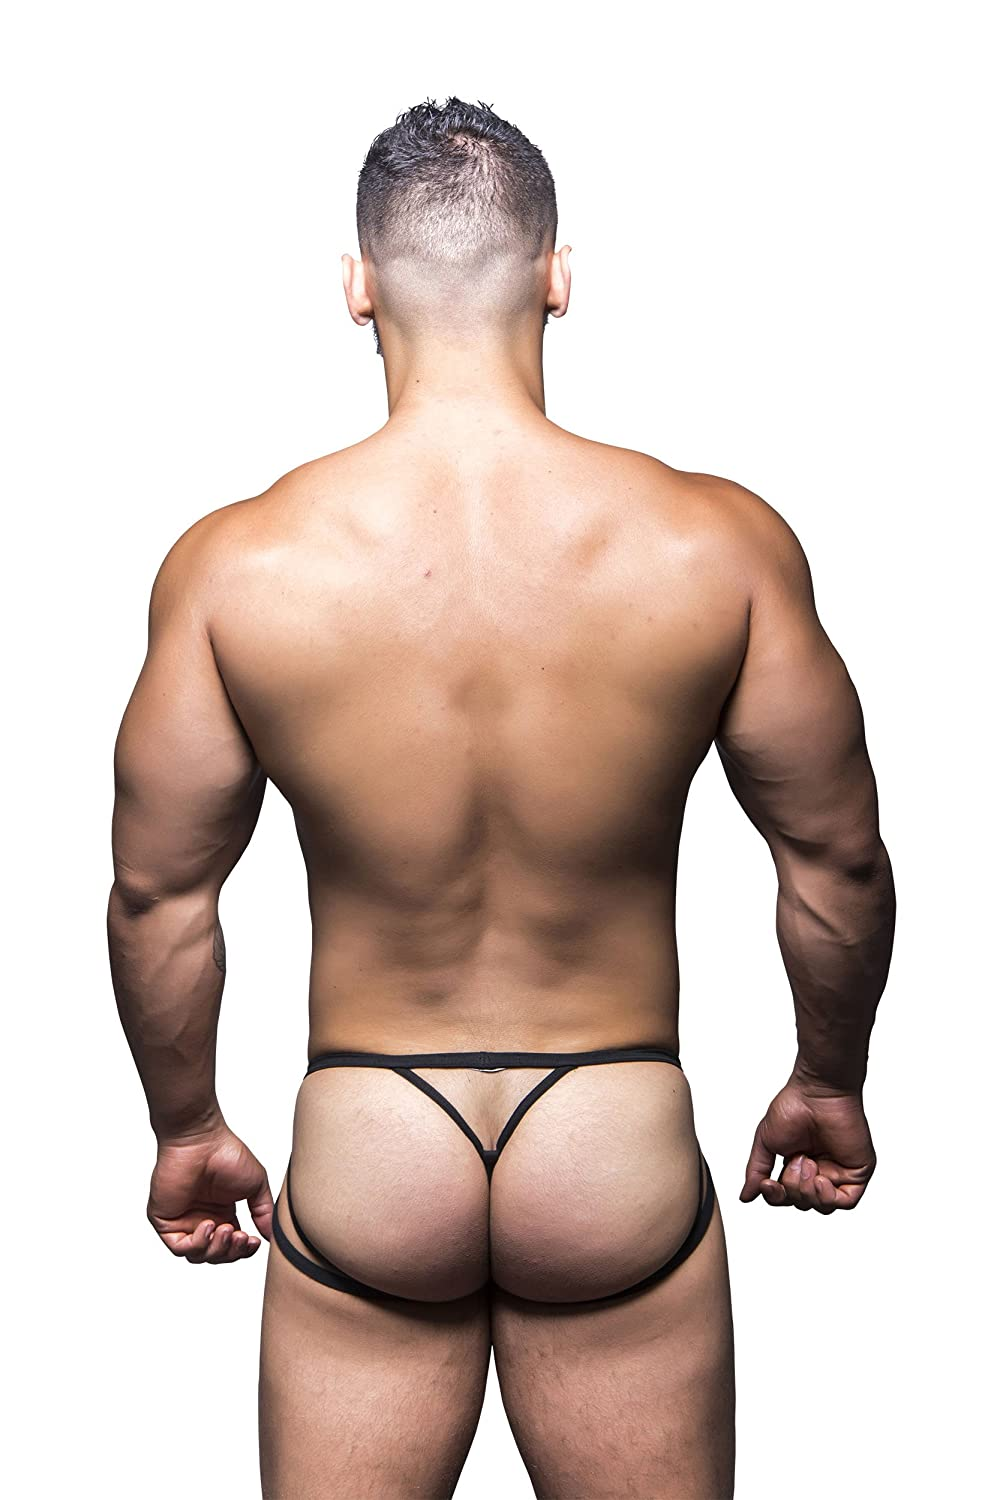 f74c2eacfad3 Amazon.com: Andrew Christian Men's Harness Jock Thong, Black, X ...